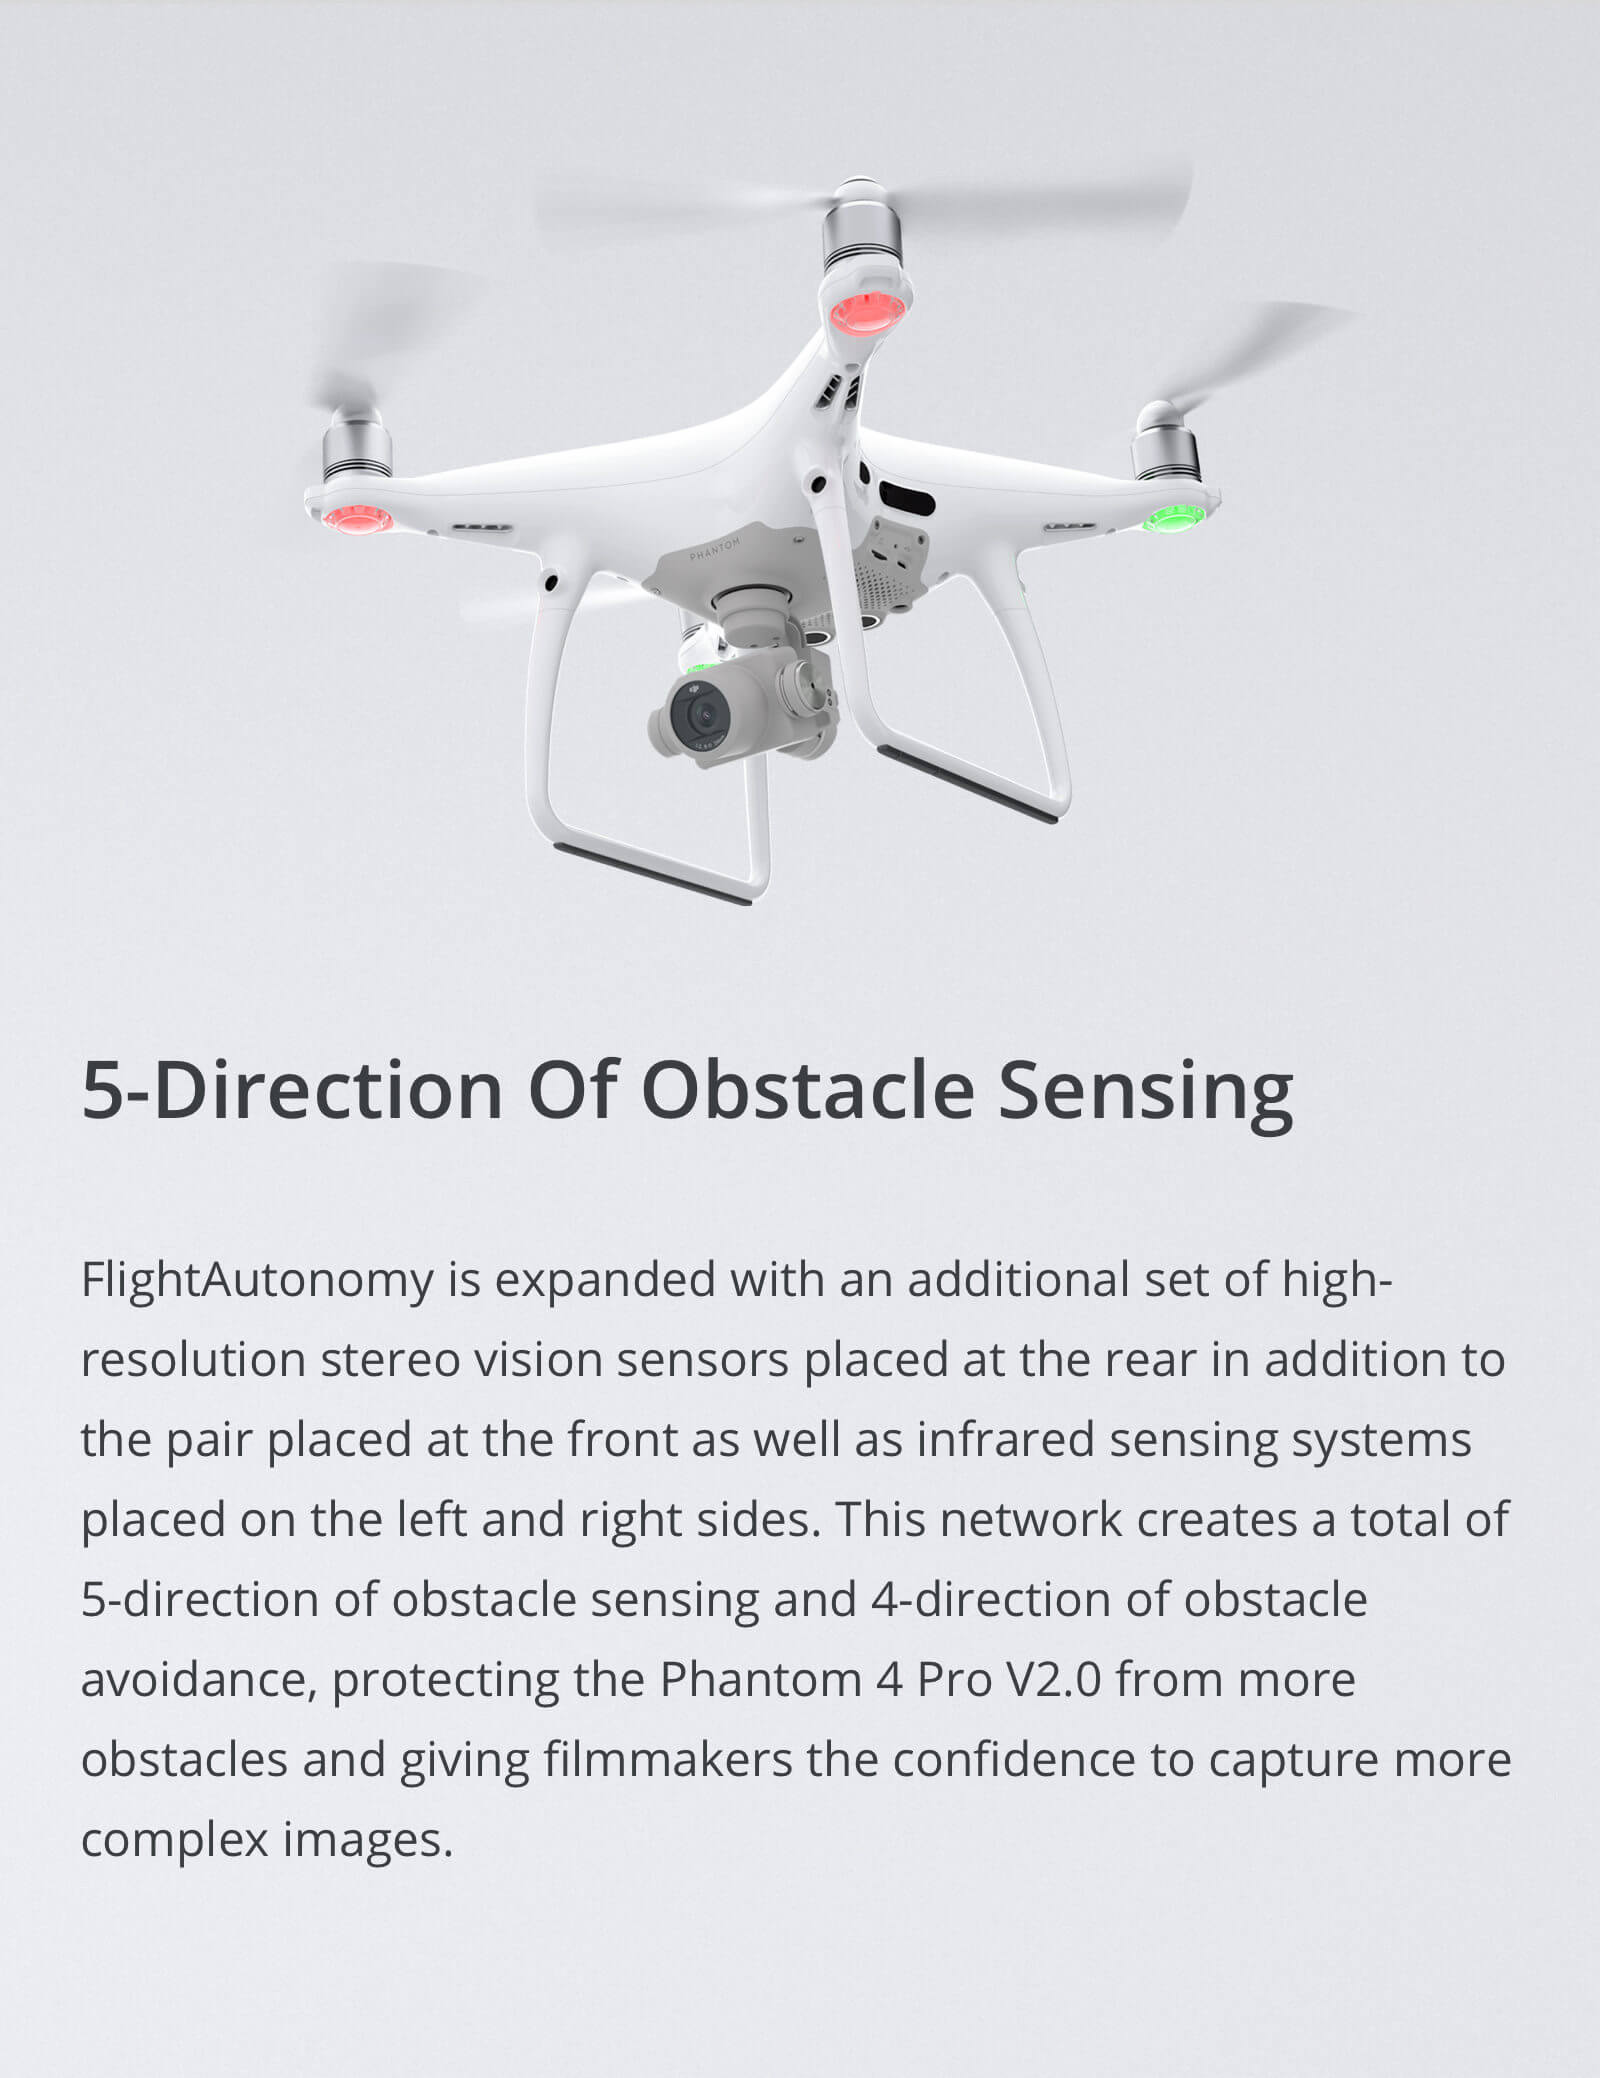 DJI PHANTOM 4 PRO V2.0 kamera Drone OcuSync Video iletim sistemi ile 4K HD Video RC FPV Quadcopter orijinal stokta